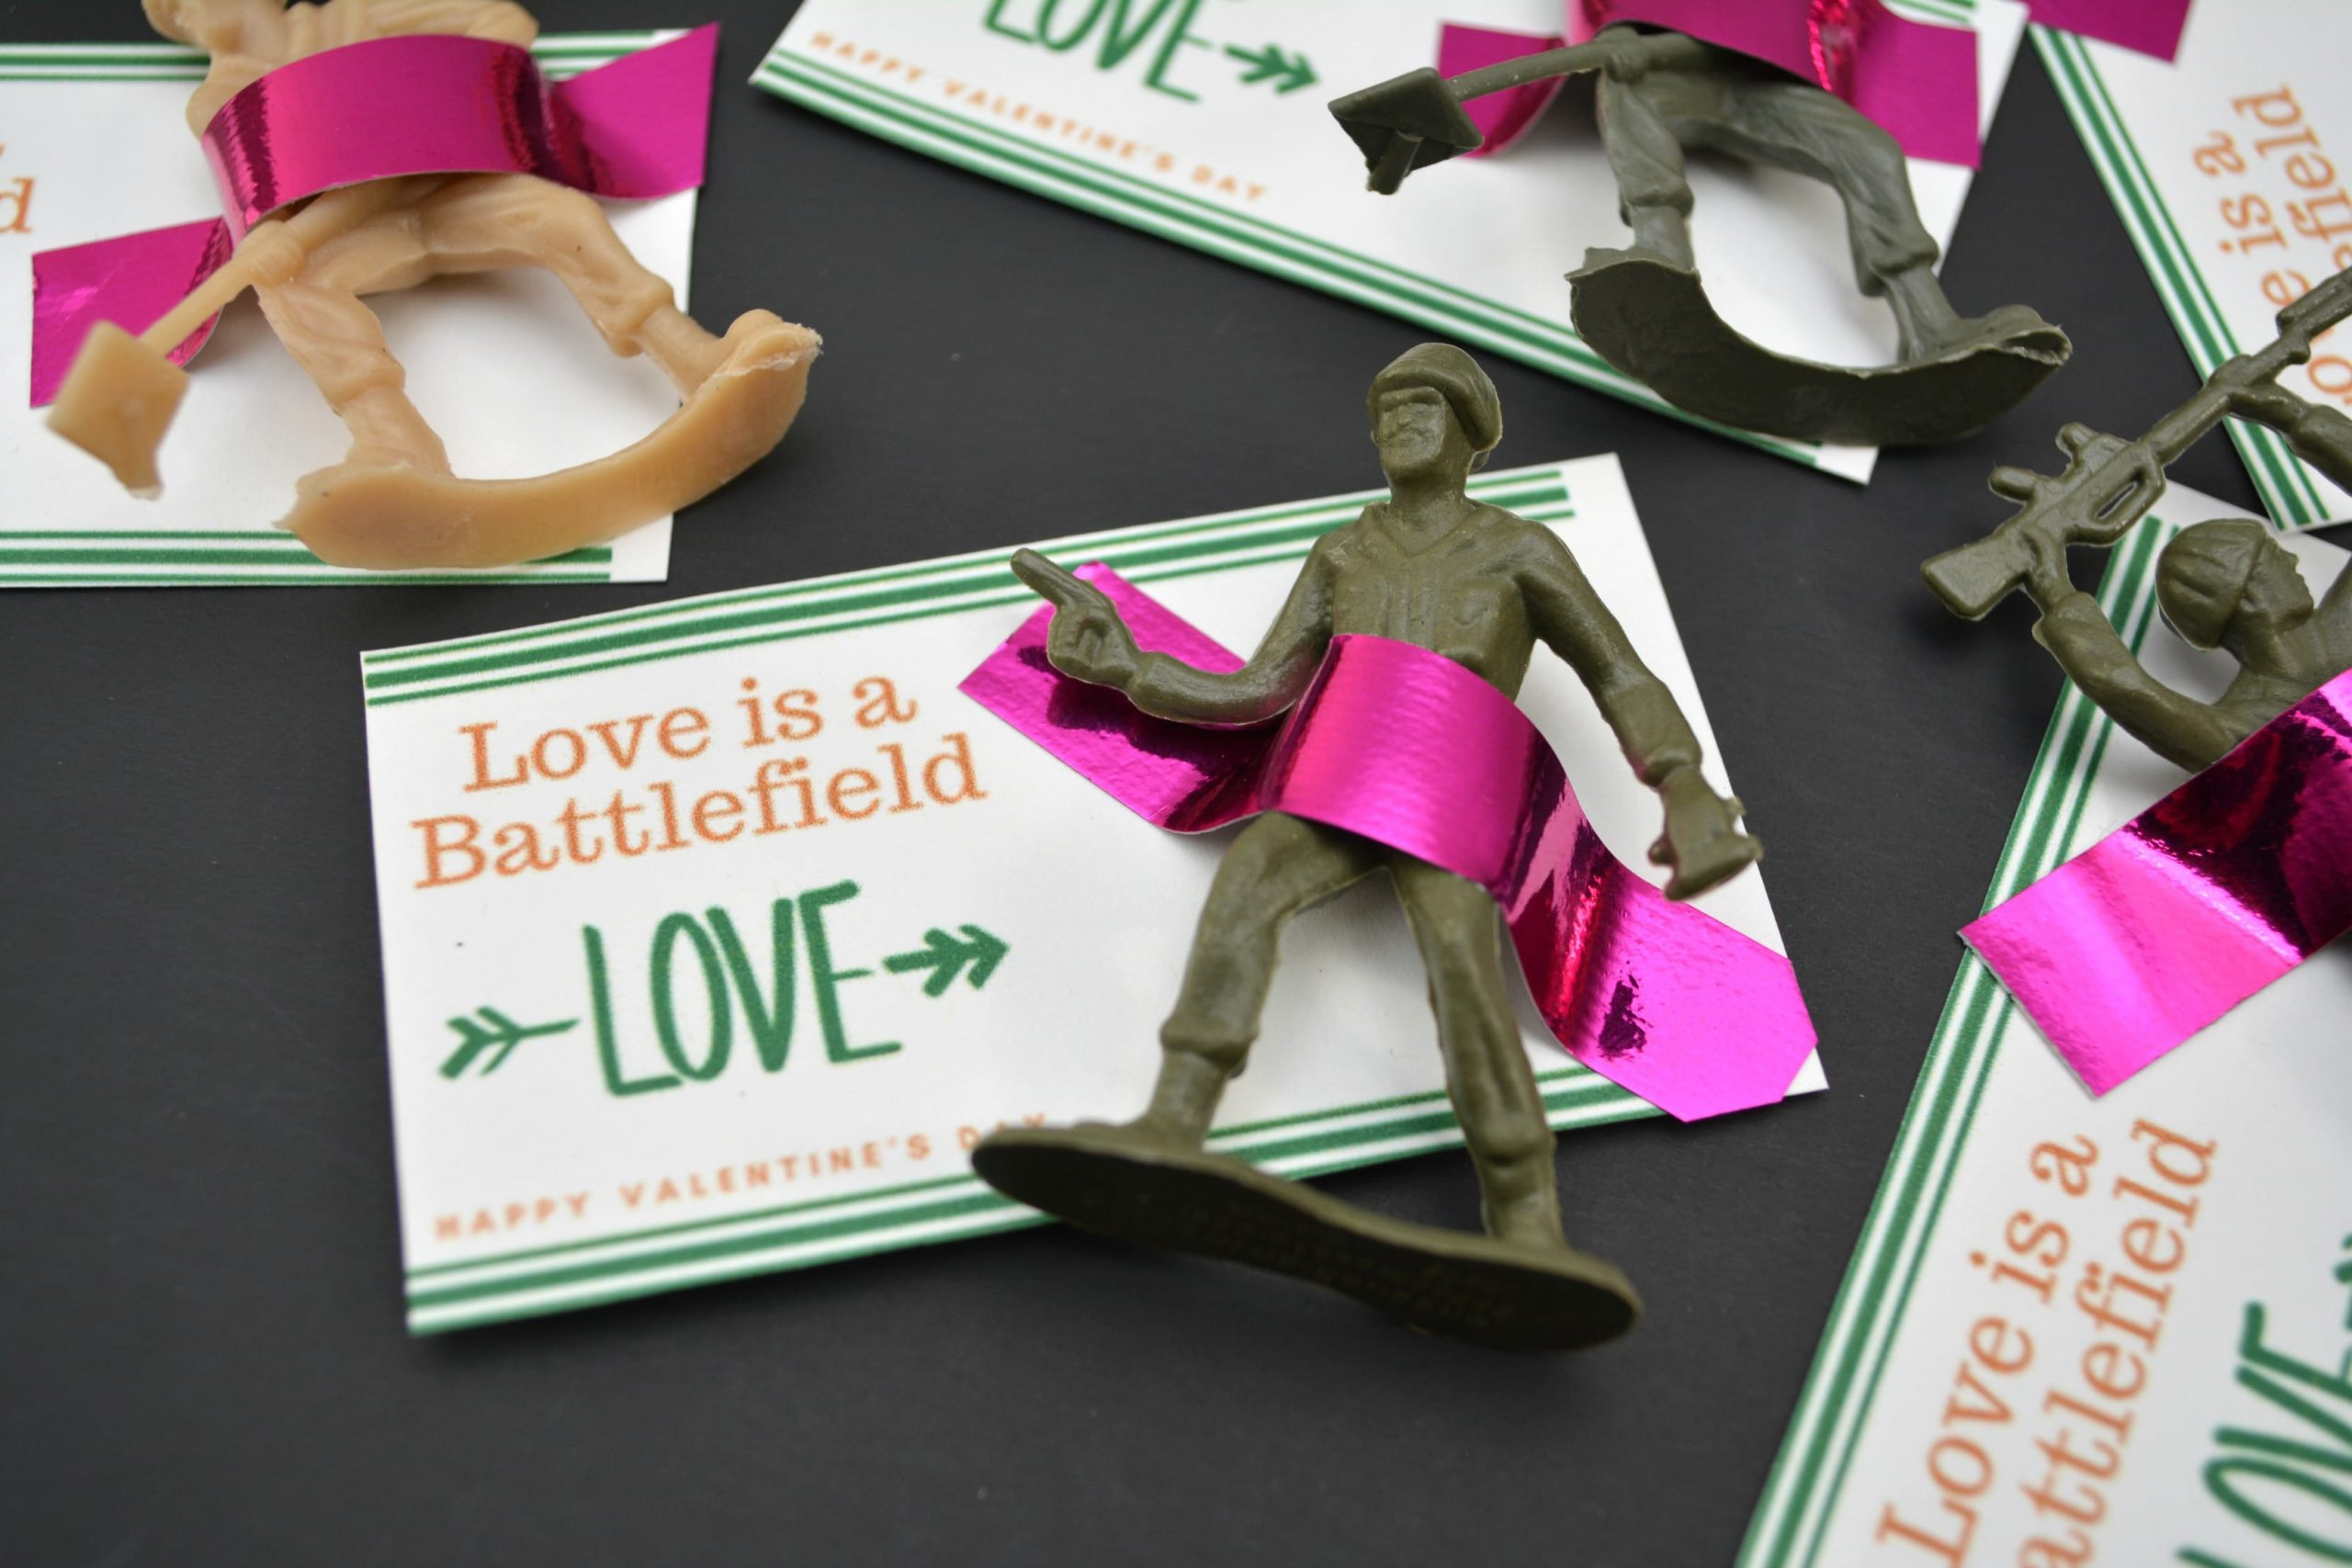 If you need a creative and boy-friendly valentine, these army men printable valentines are the perfect non-candy valentines for your son's classroom!